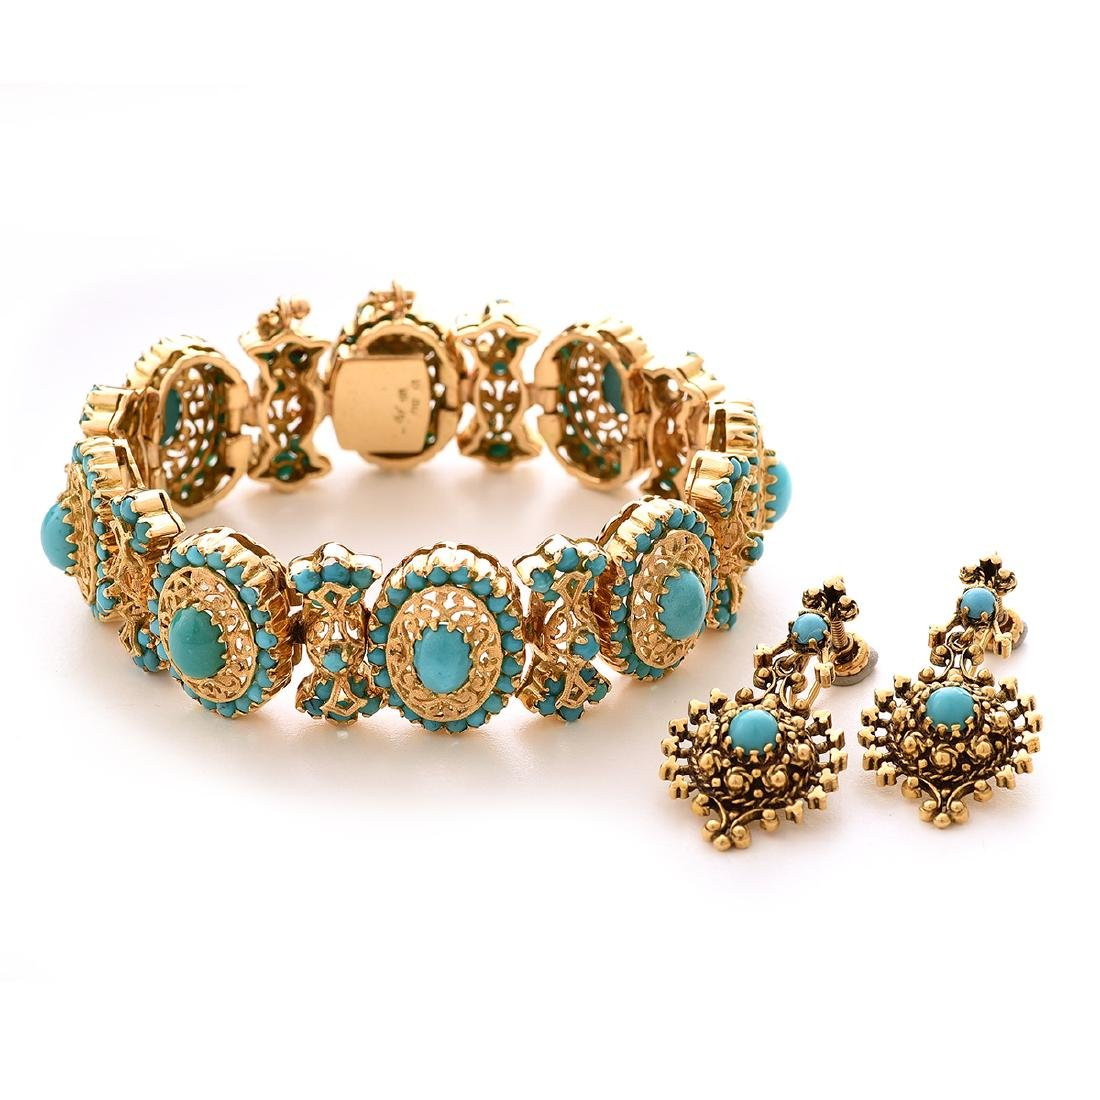 Reproduction Turquoise, Yellow Gold Jewelry Suite.